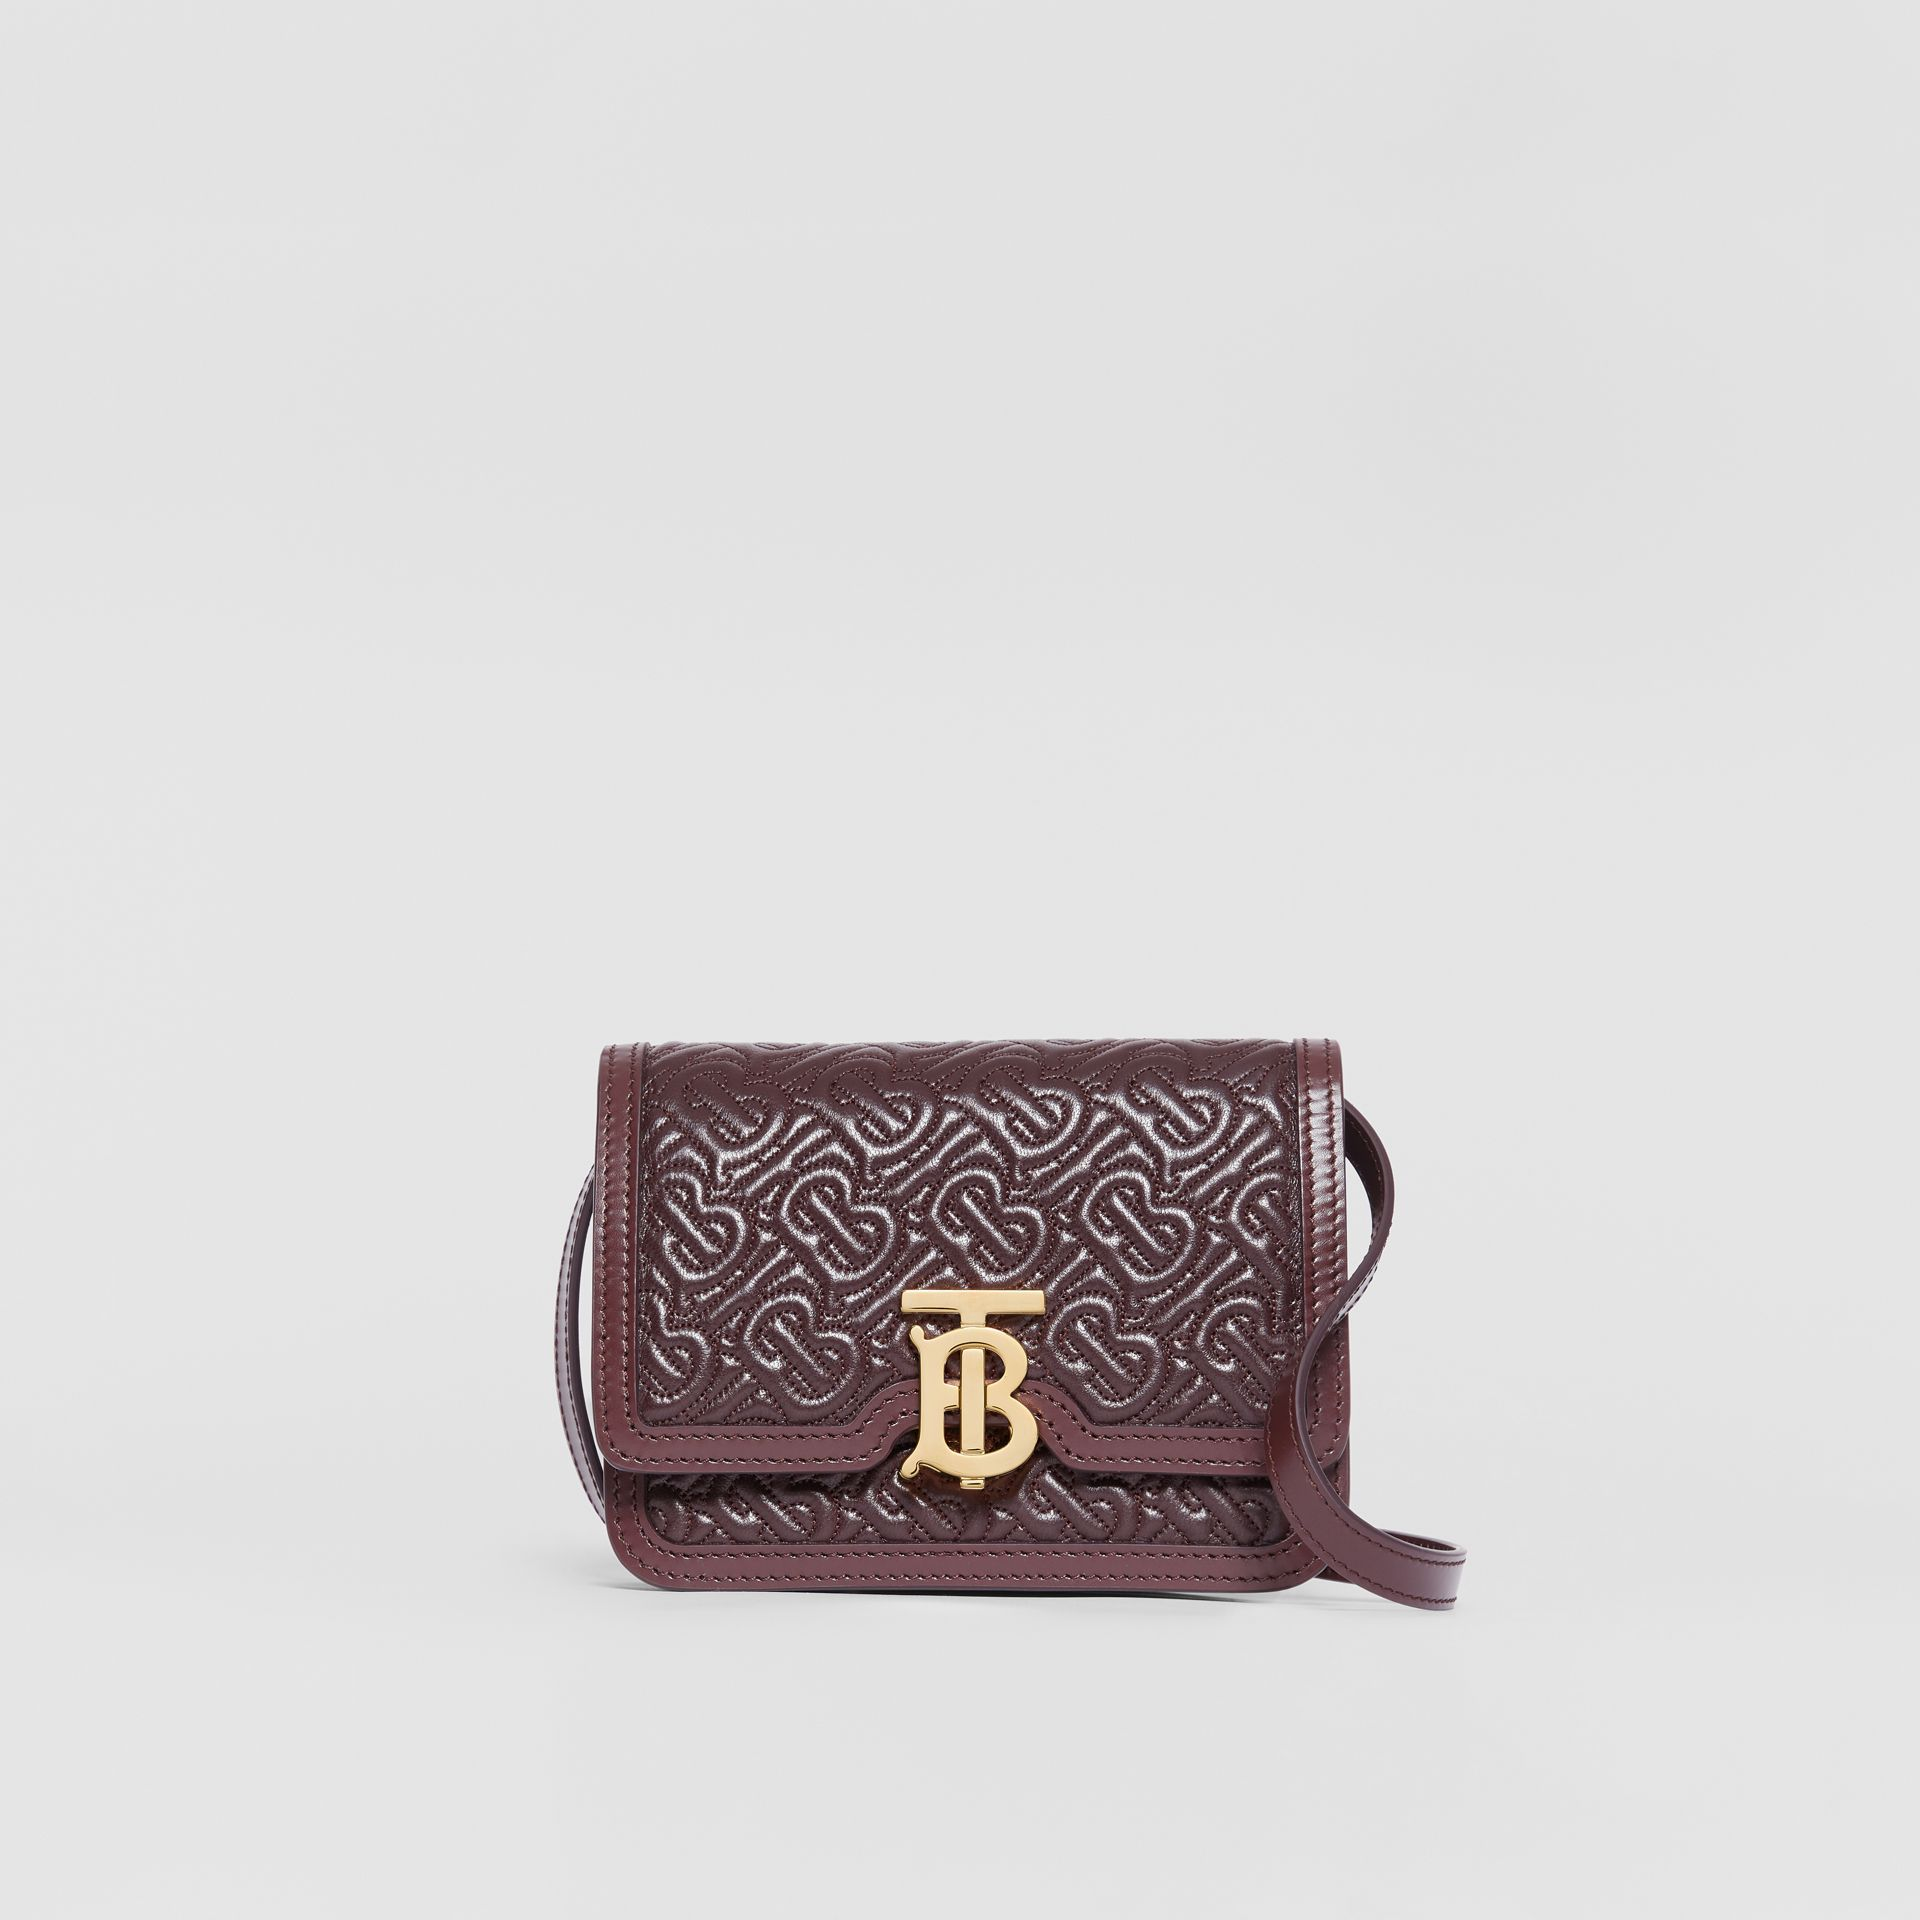 Mini Quilted Monogram Lambskin TB Bag in Dark Burgundy - Women | Burberry Hong Kong S.A.R - gallery image 0